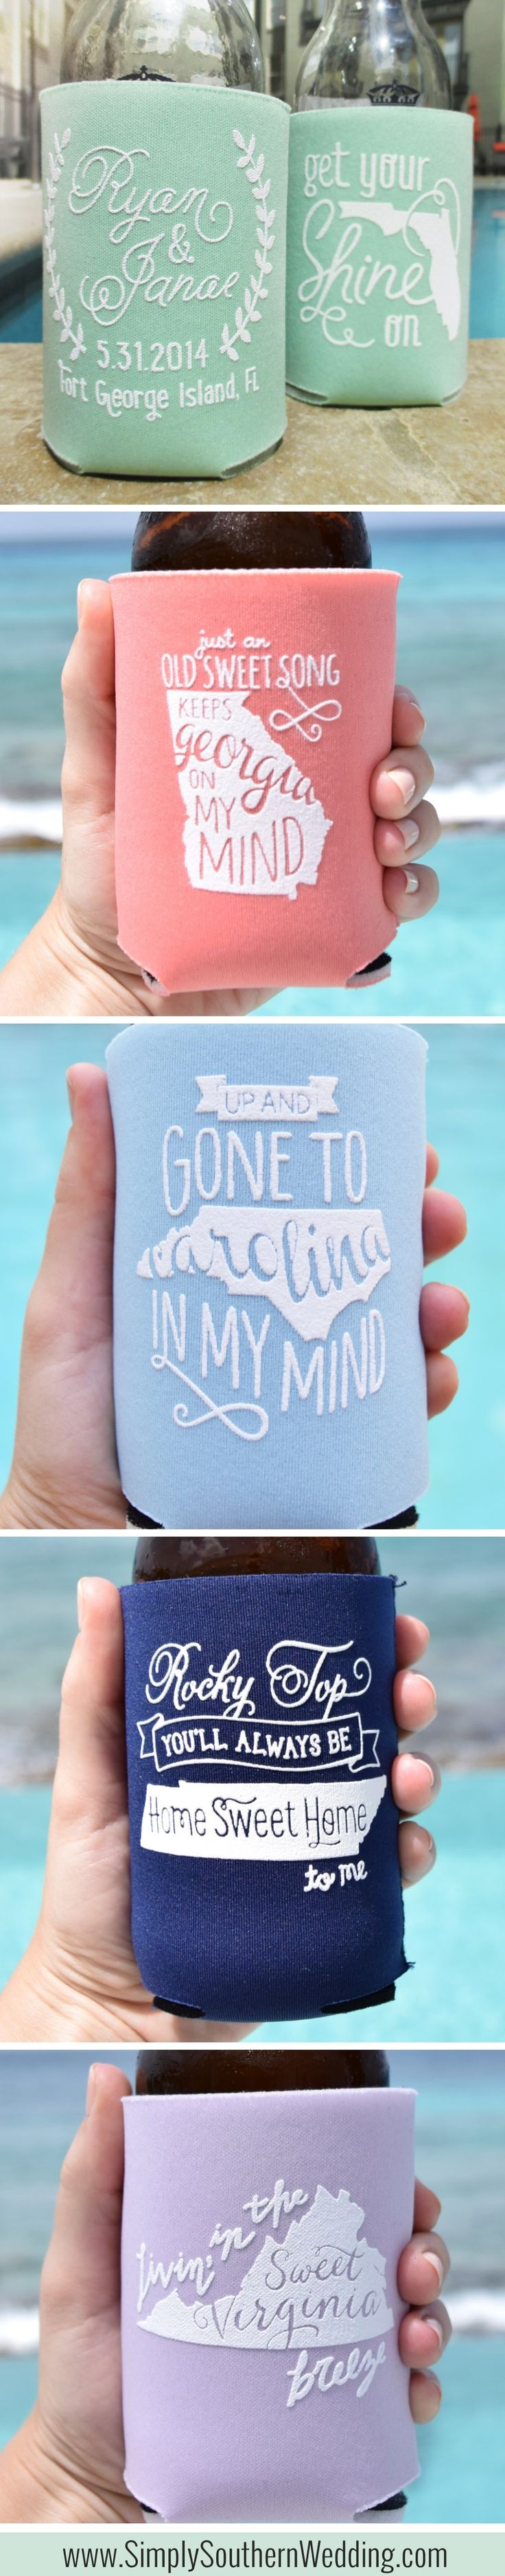 Personalized southern state wedding koozies, available in several colors and styles